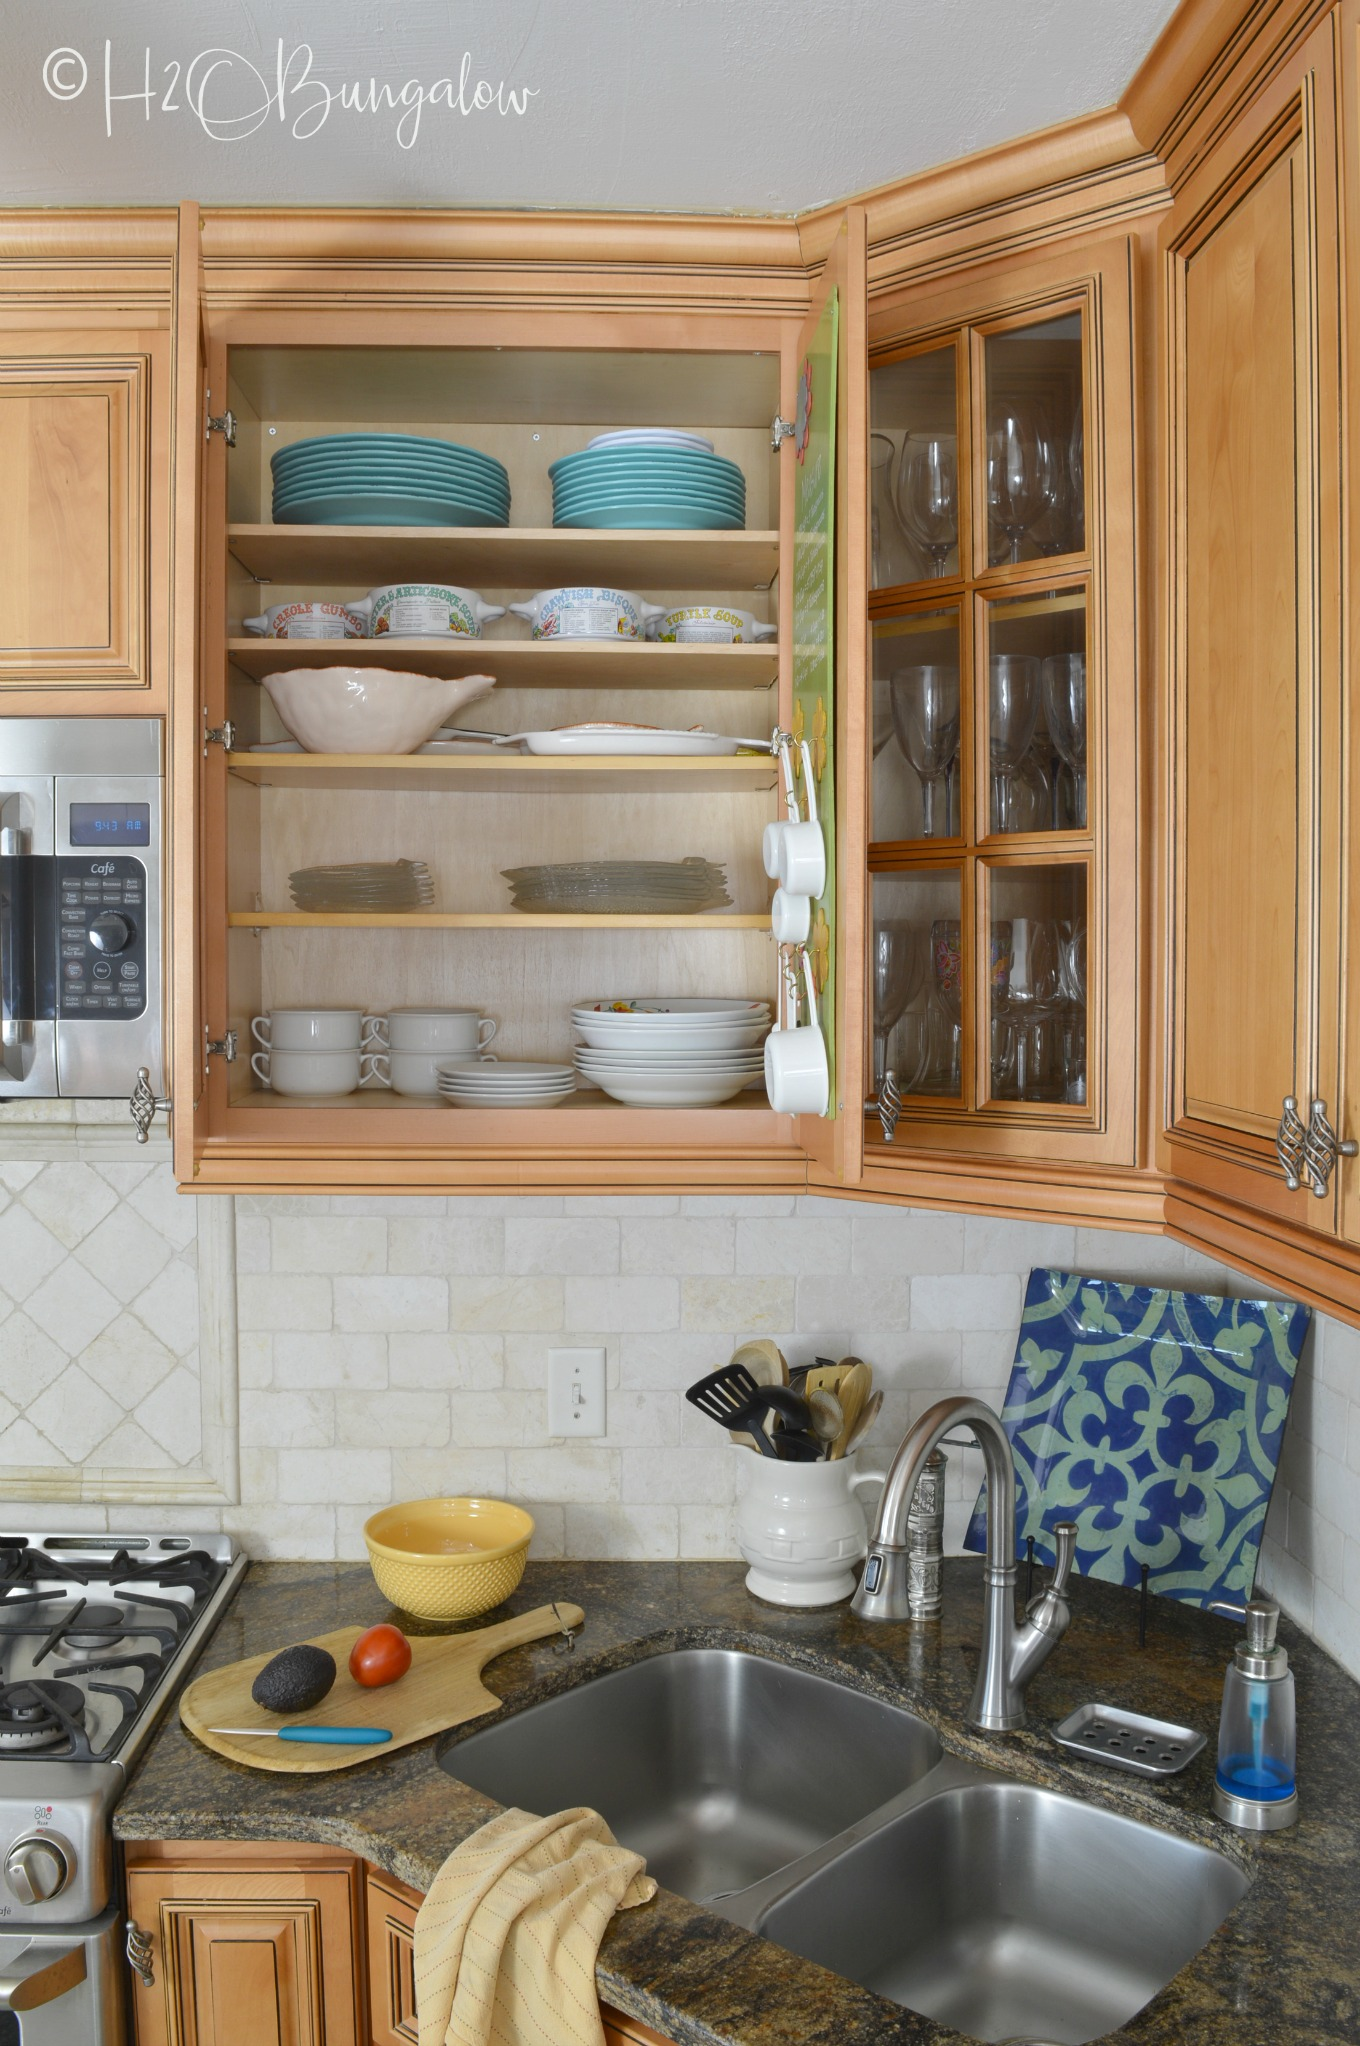 Kitchen Cabinet Organizer Ideas Creative Diy Shelving Ideas For Organization And Style H2obungalow